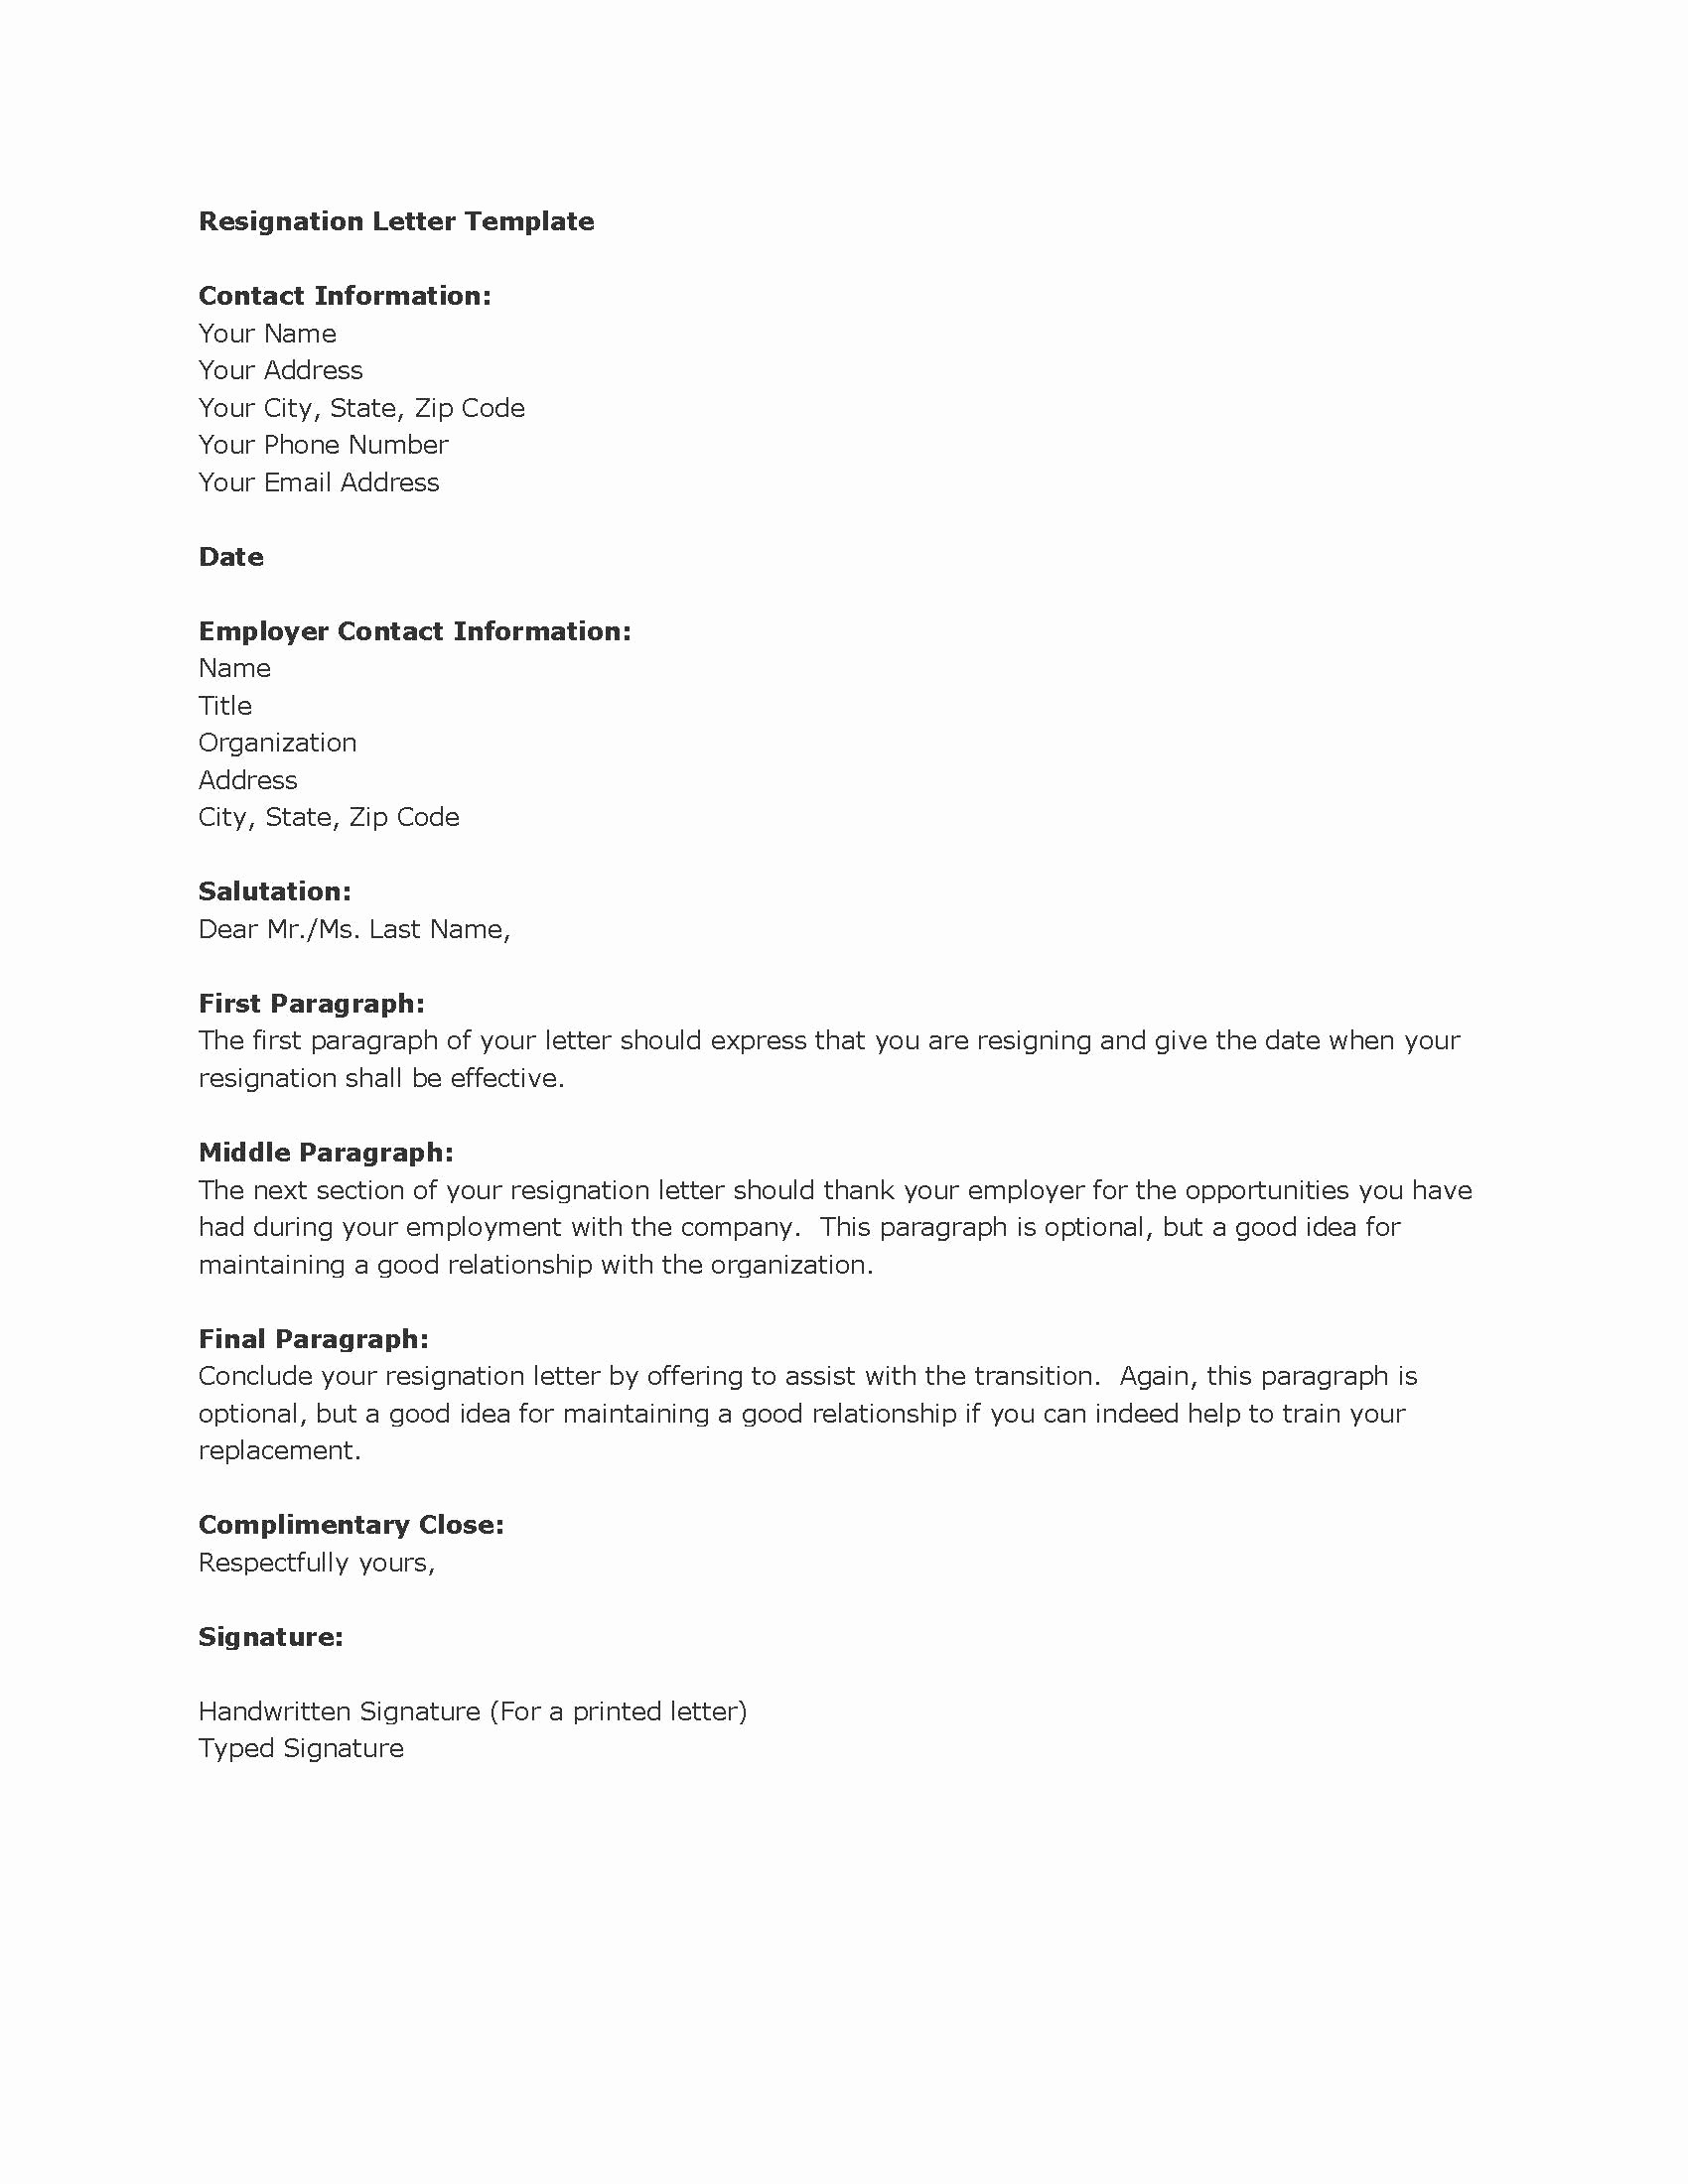 Letter Of Resignation Template Microsoft Inspirational Best Letter Of Resignation Template